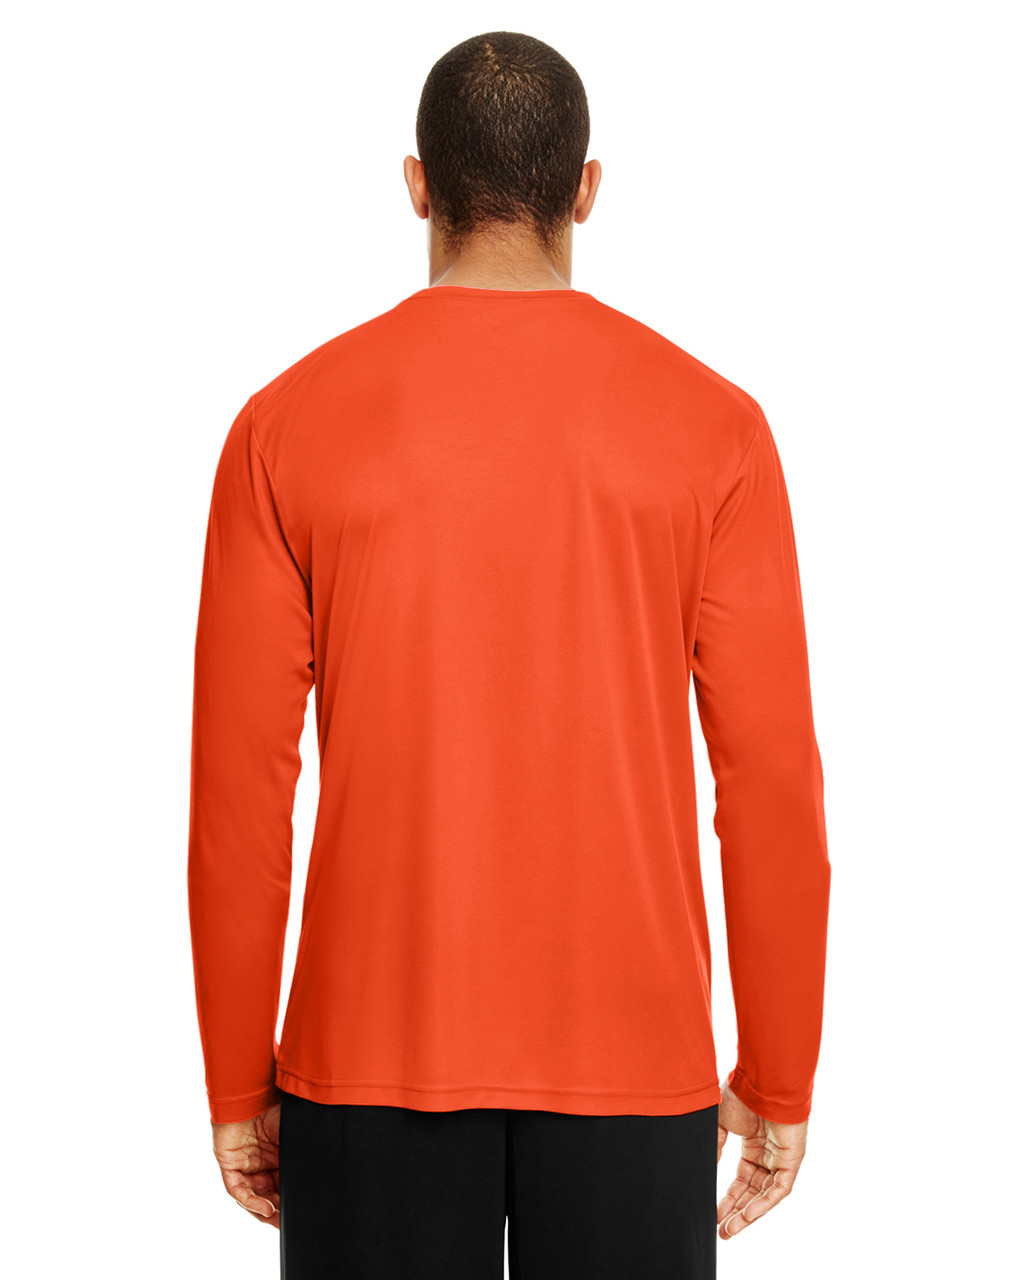 Sport Orange, Back - TT11L Team 365 Men's Zone Performance Long Sleeve T-Shirt | BlankClothing.ca